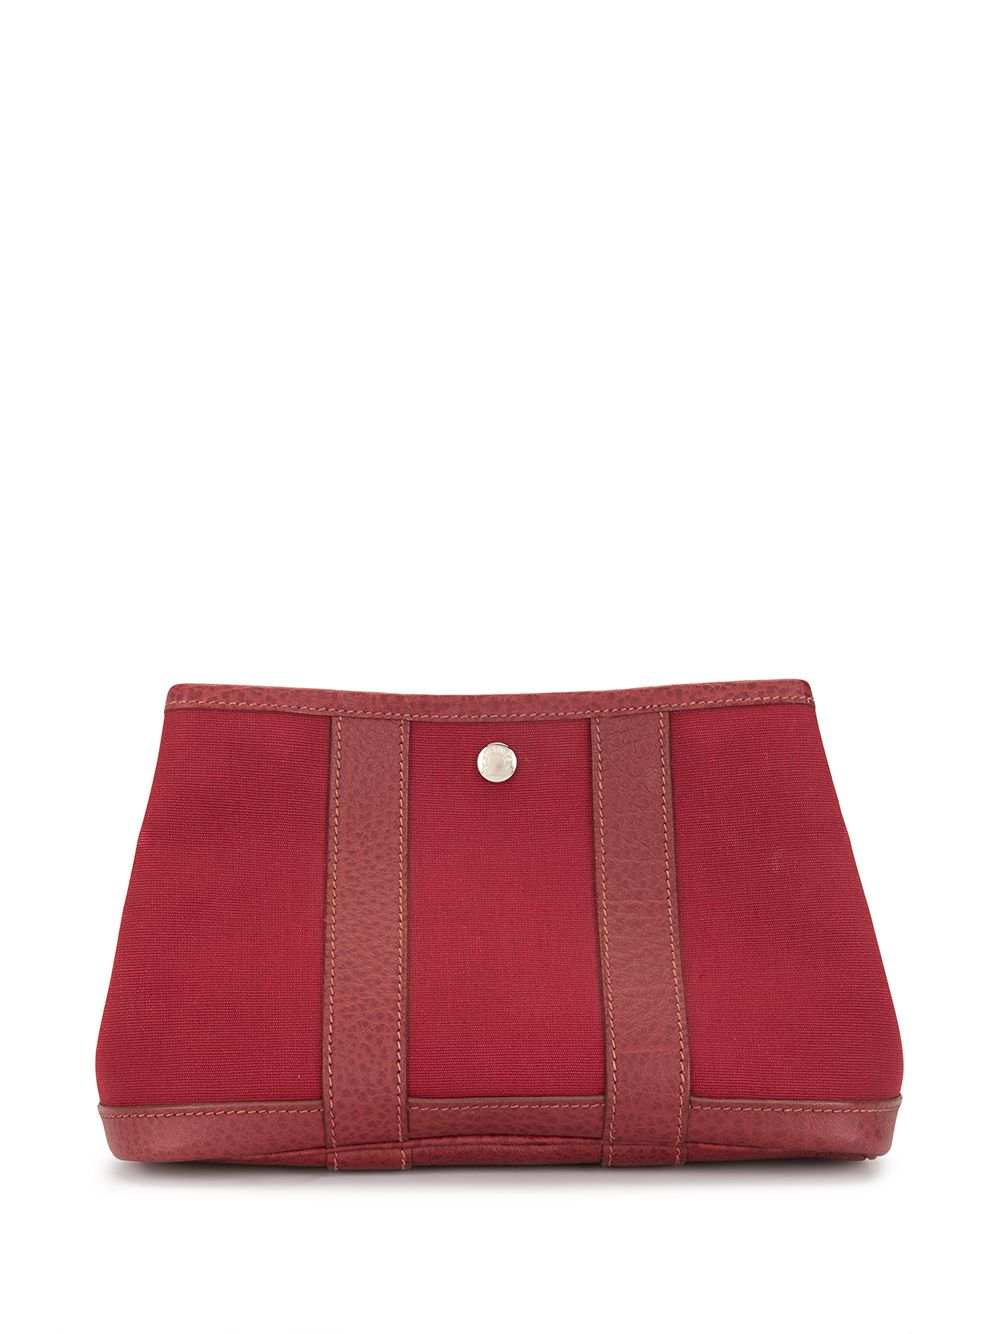 Hermès 2008 pre-owned Garden Party Clutch - Rot